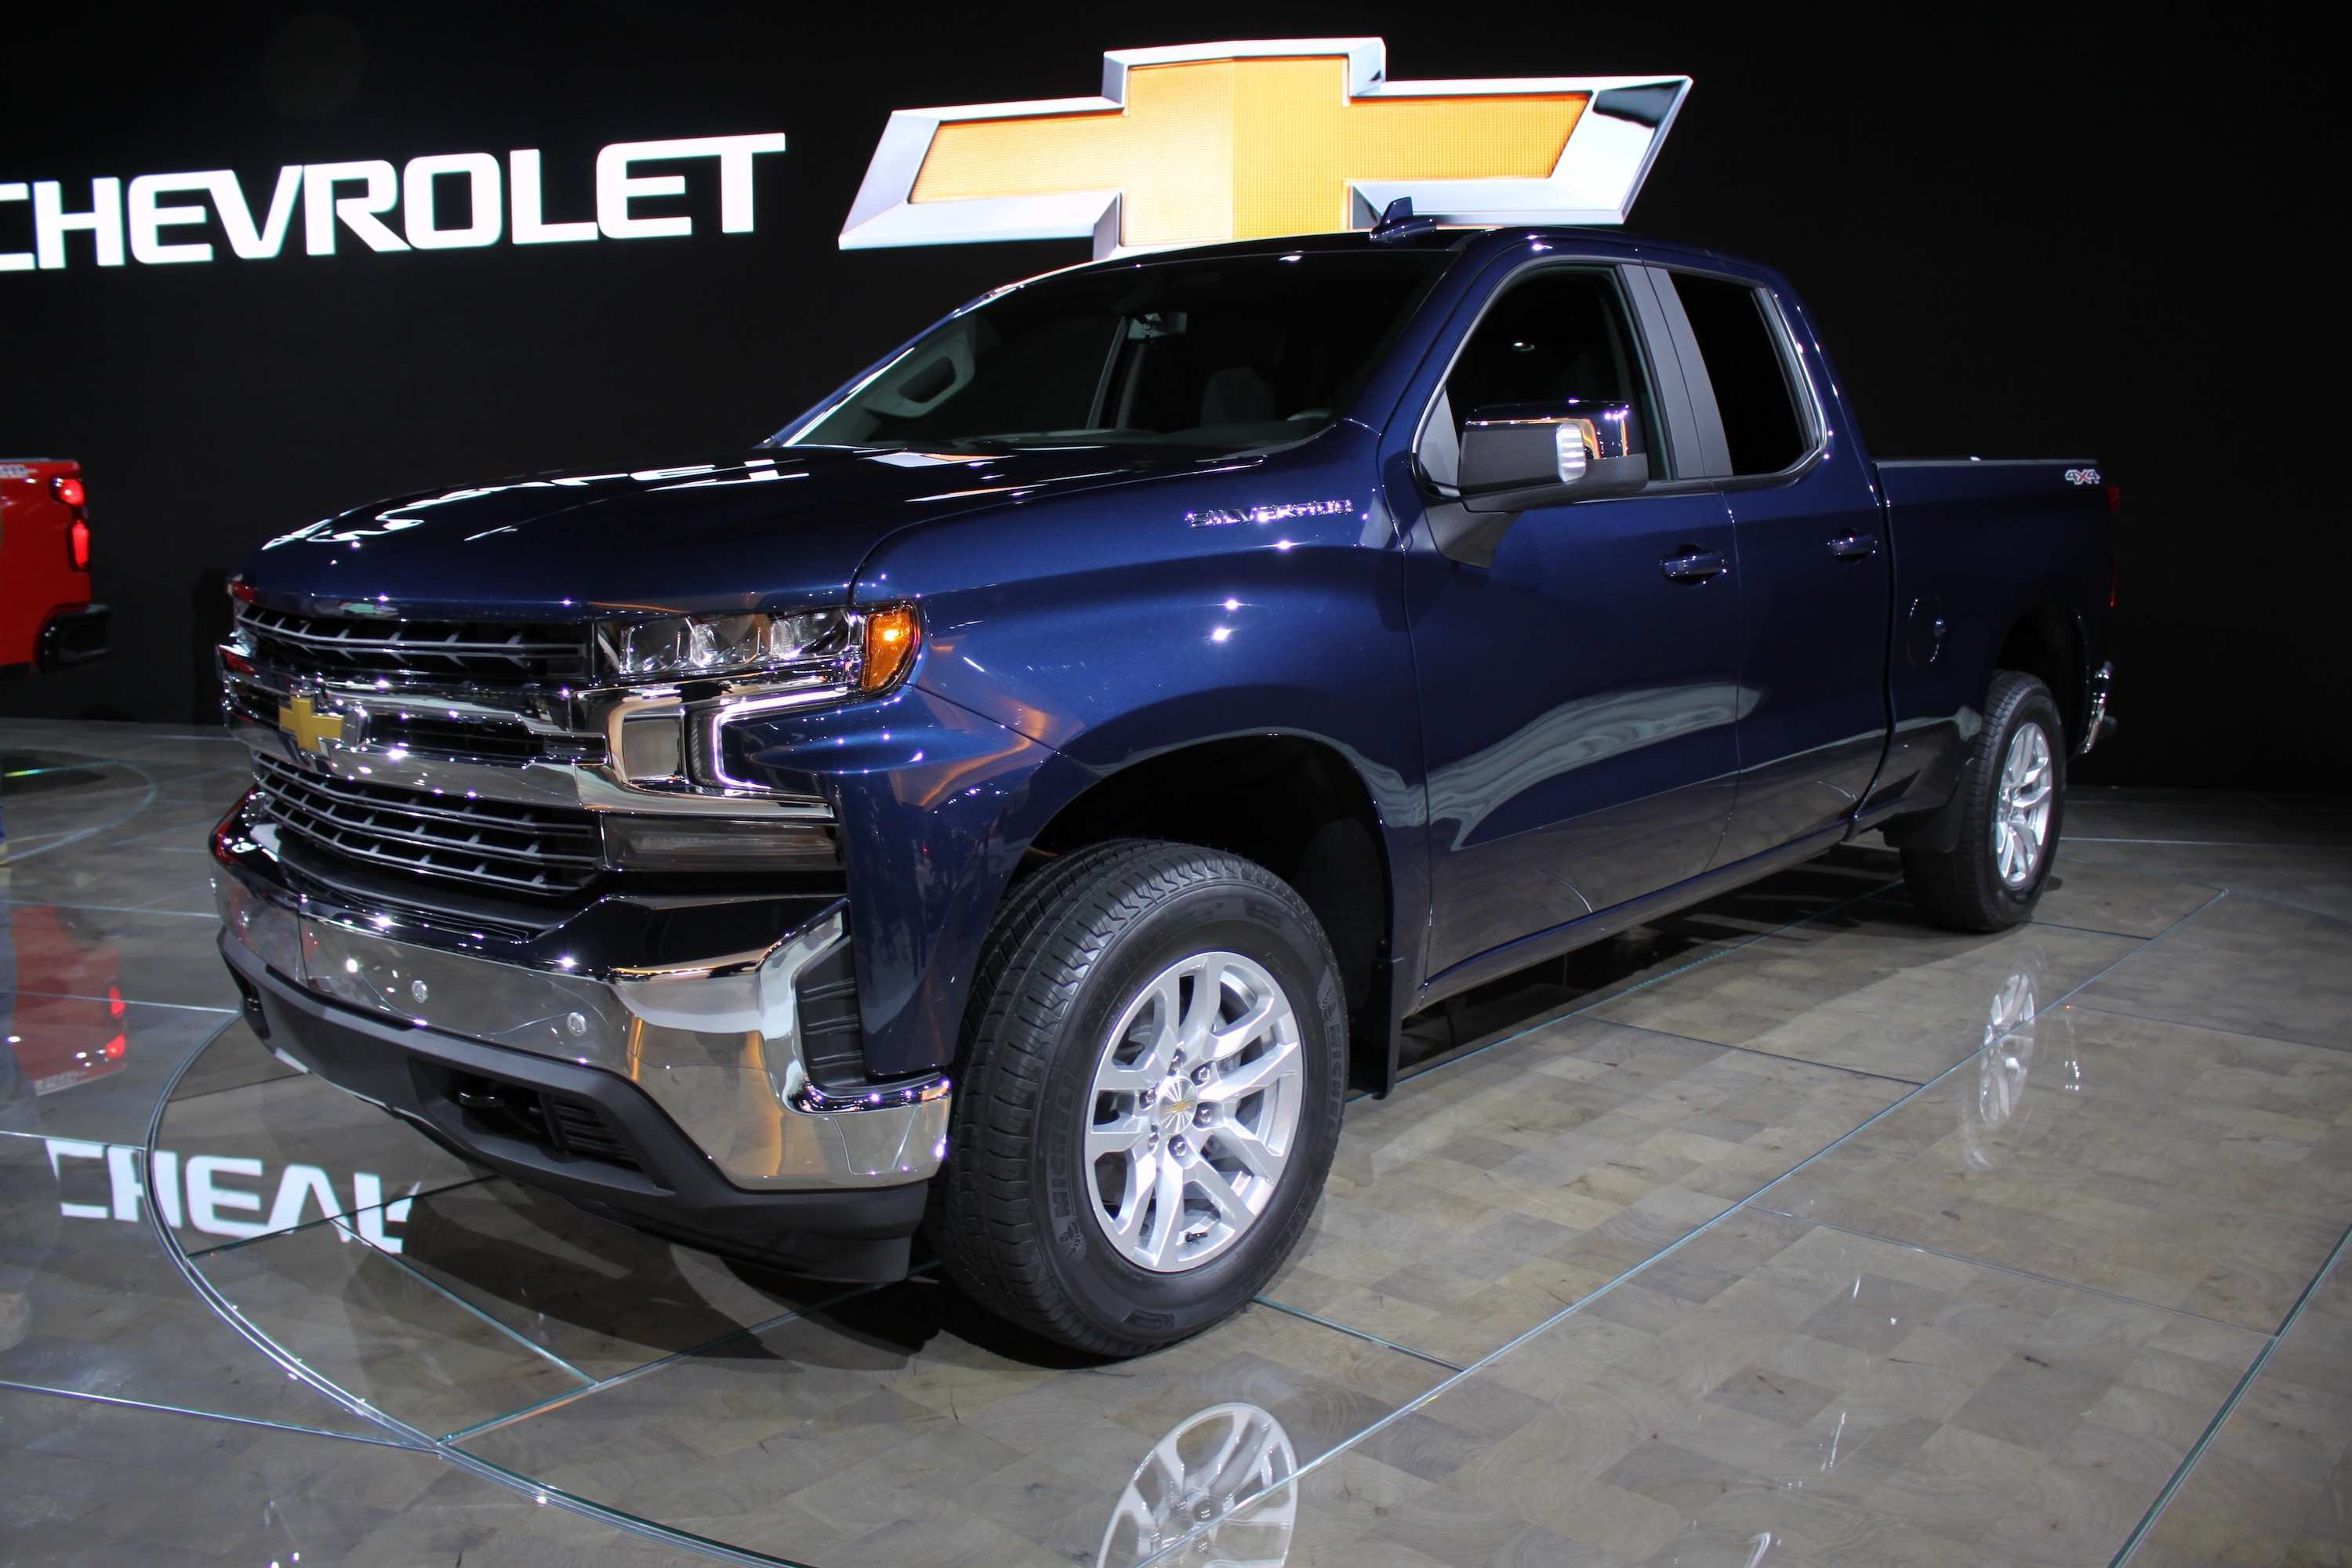 49 All New The 2019 Chevrolet Duramax Specs Price And Release Date Ratings with The 2019 Chevrolet Duramax Specs Price And Release Date